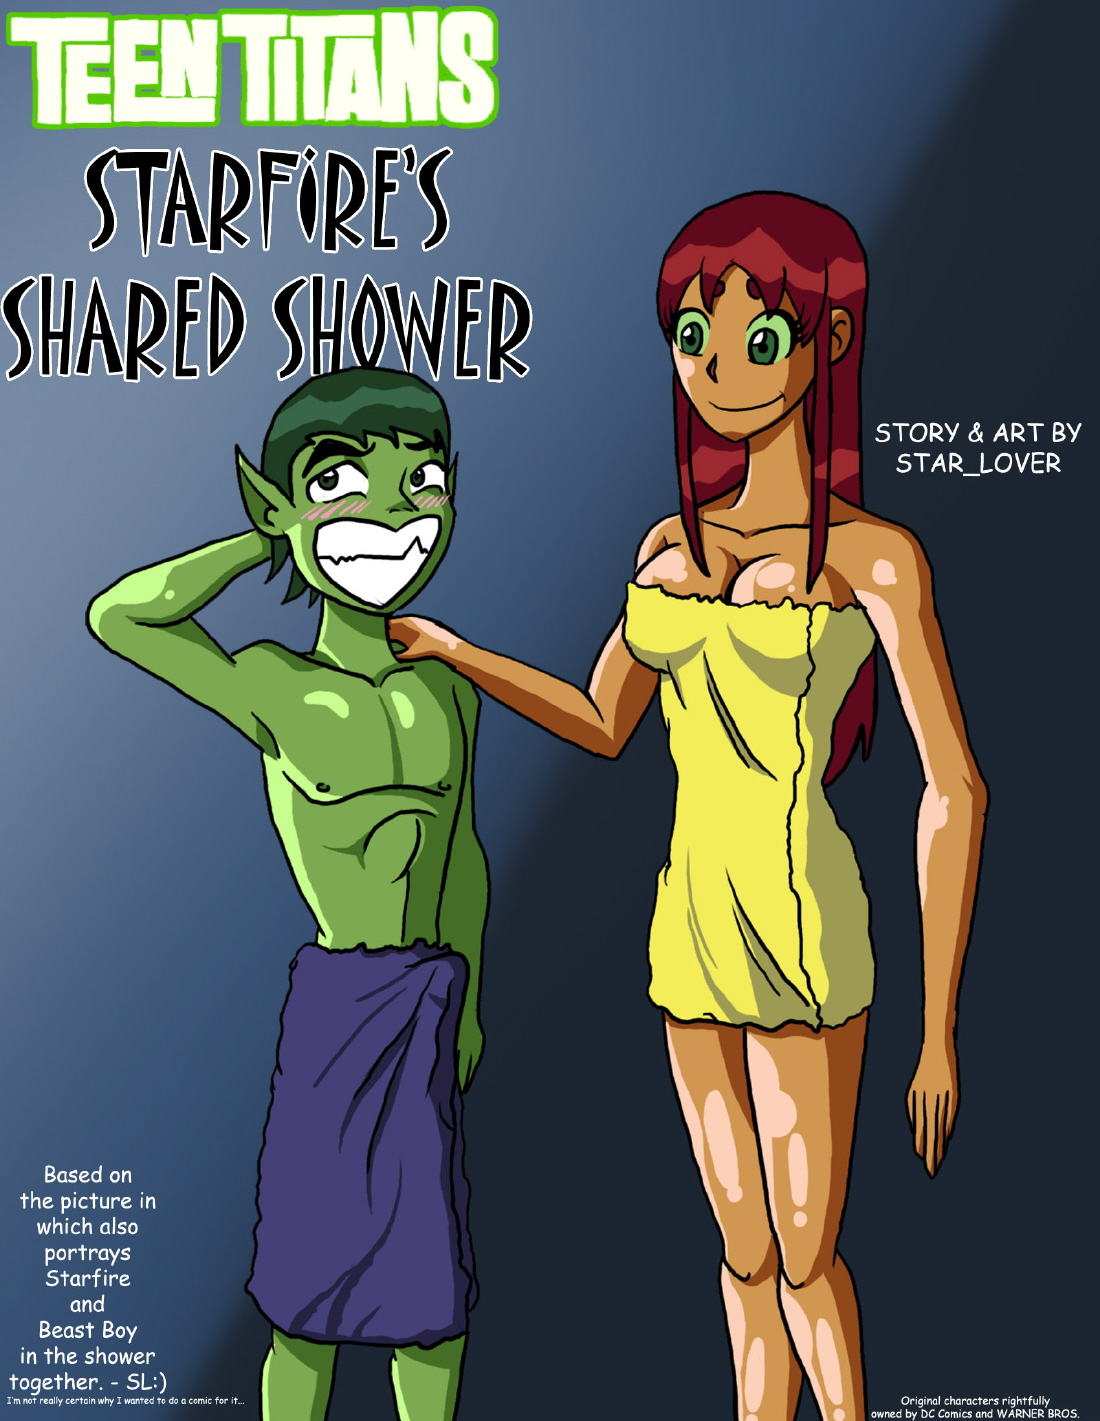 Goodcomix The Teen Titans - [Star_Lover] - Starfire's Shared Shower xxx porno